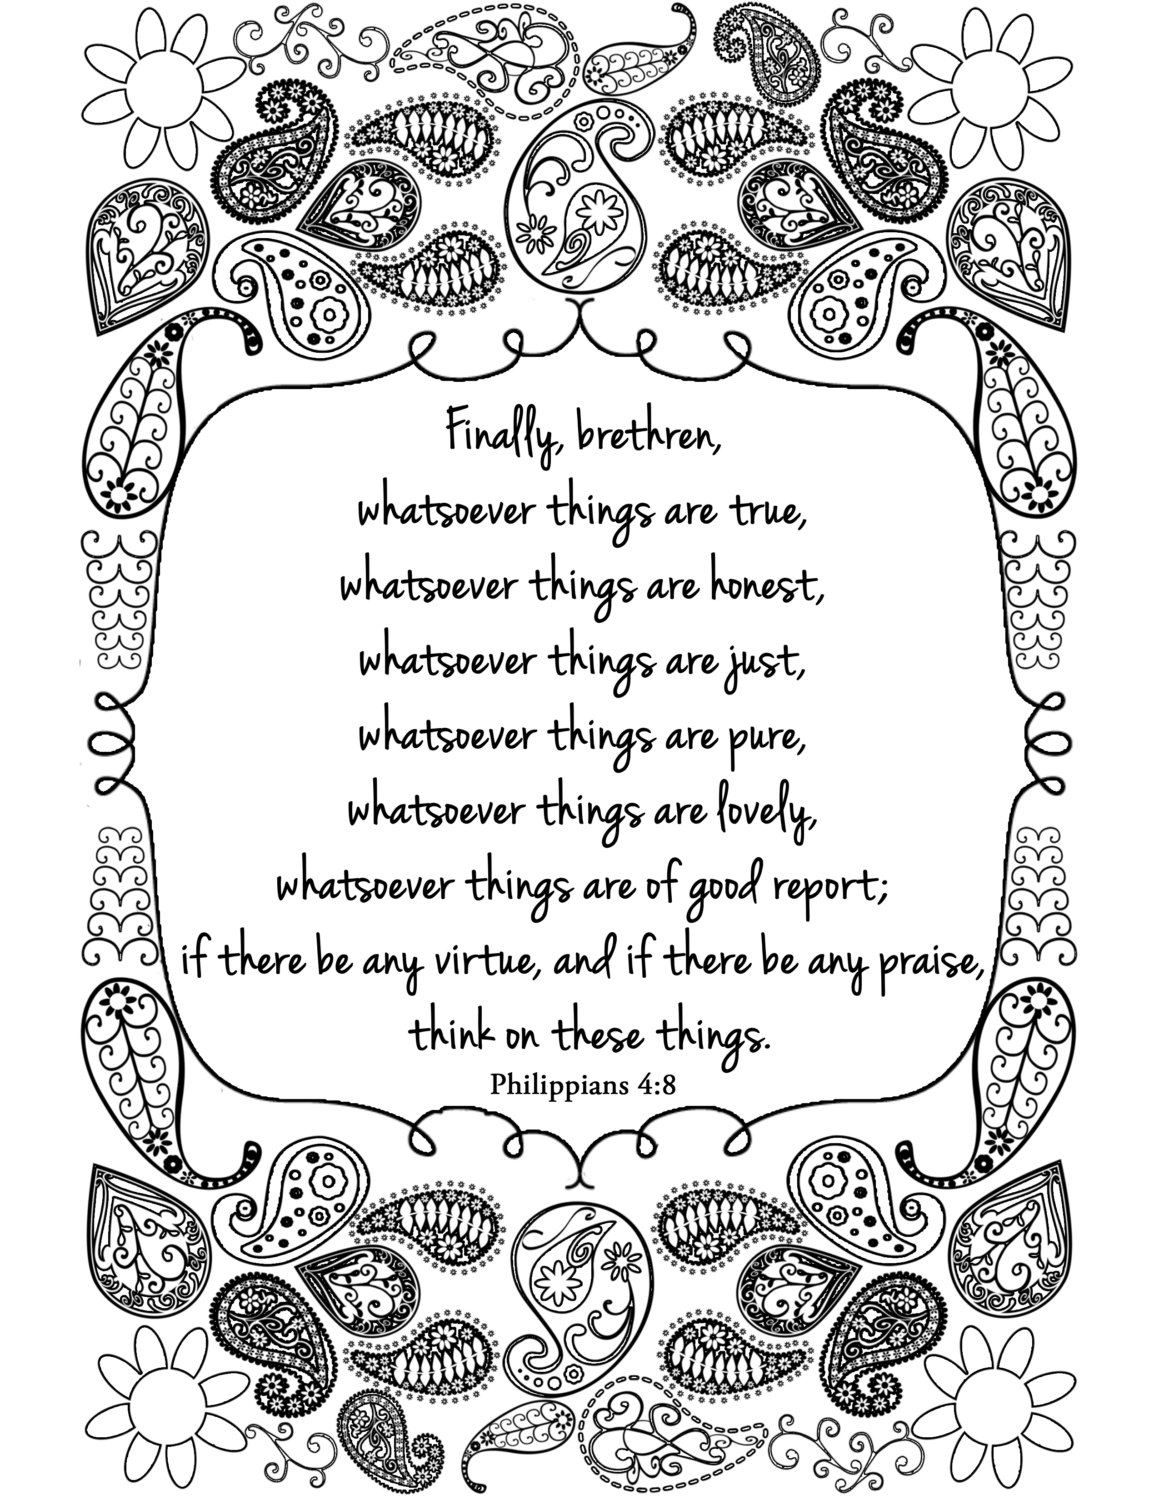 philippians 4 8 coloring page think on these things bible verse adult coloring by 8 coloring page 4 philippians